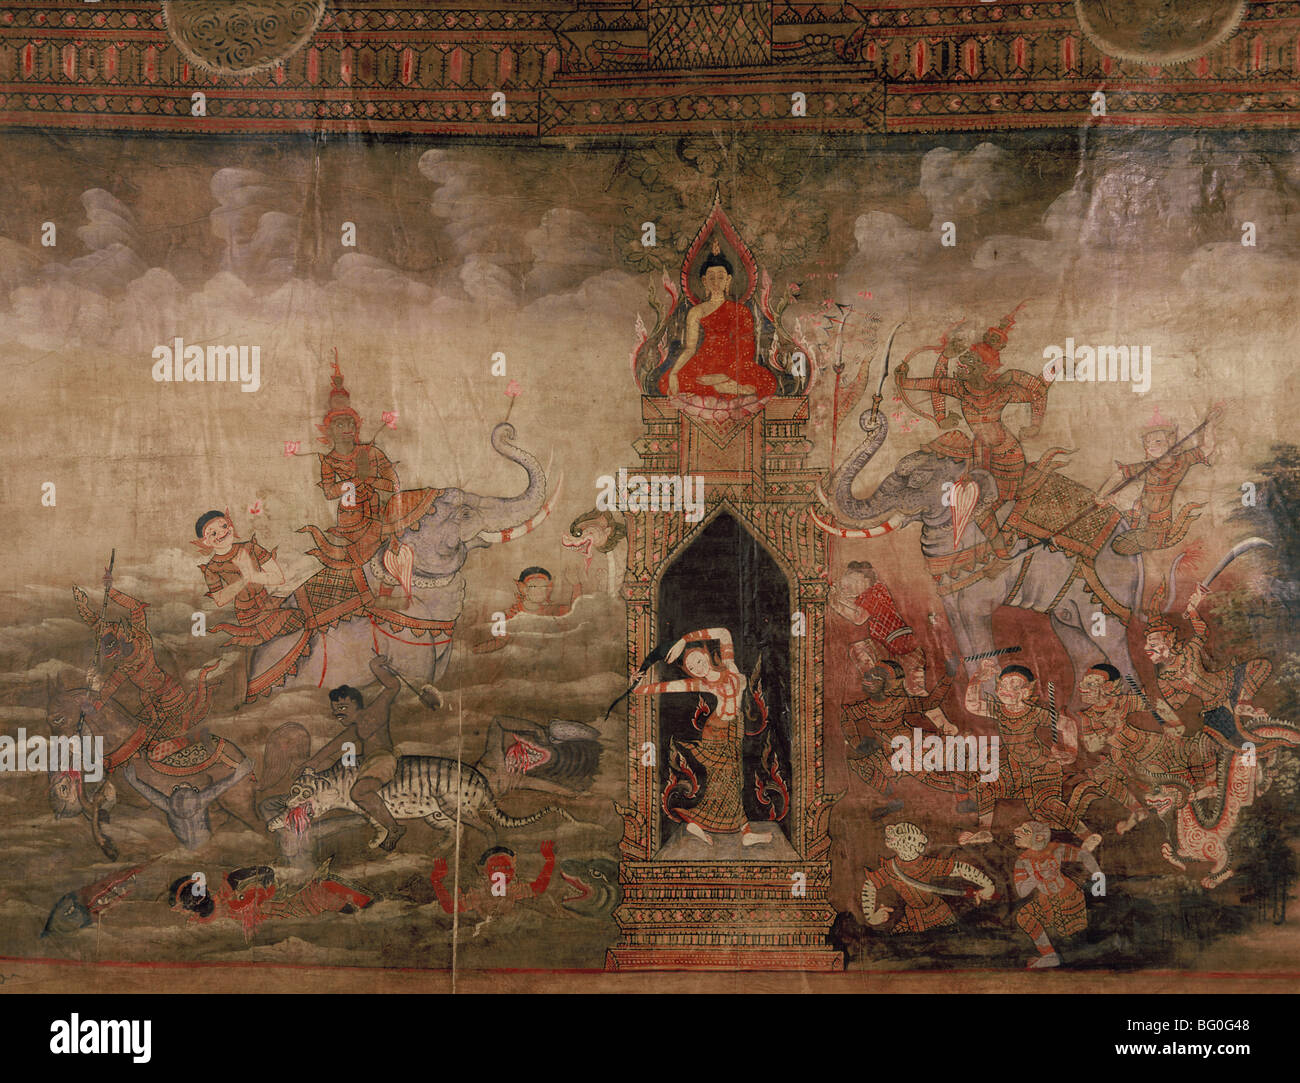 Painting on cloth of Buddha's victory over Mara, Thailand, Southeast Asia, Asia - Stock Image